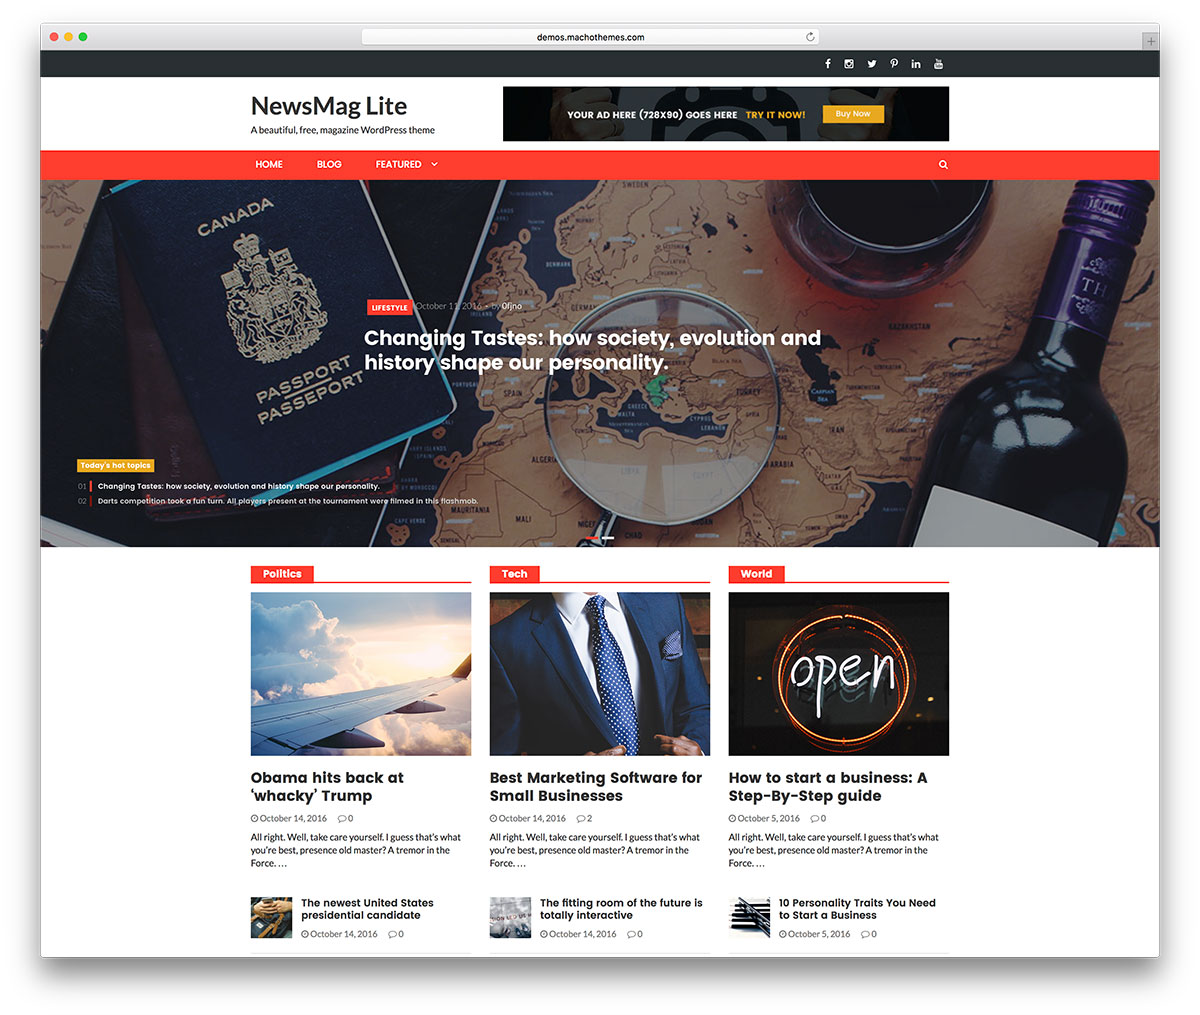 newsmaglite-free-magazine-wordpress-theme